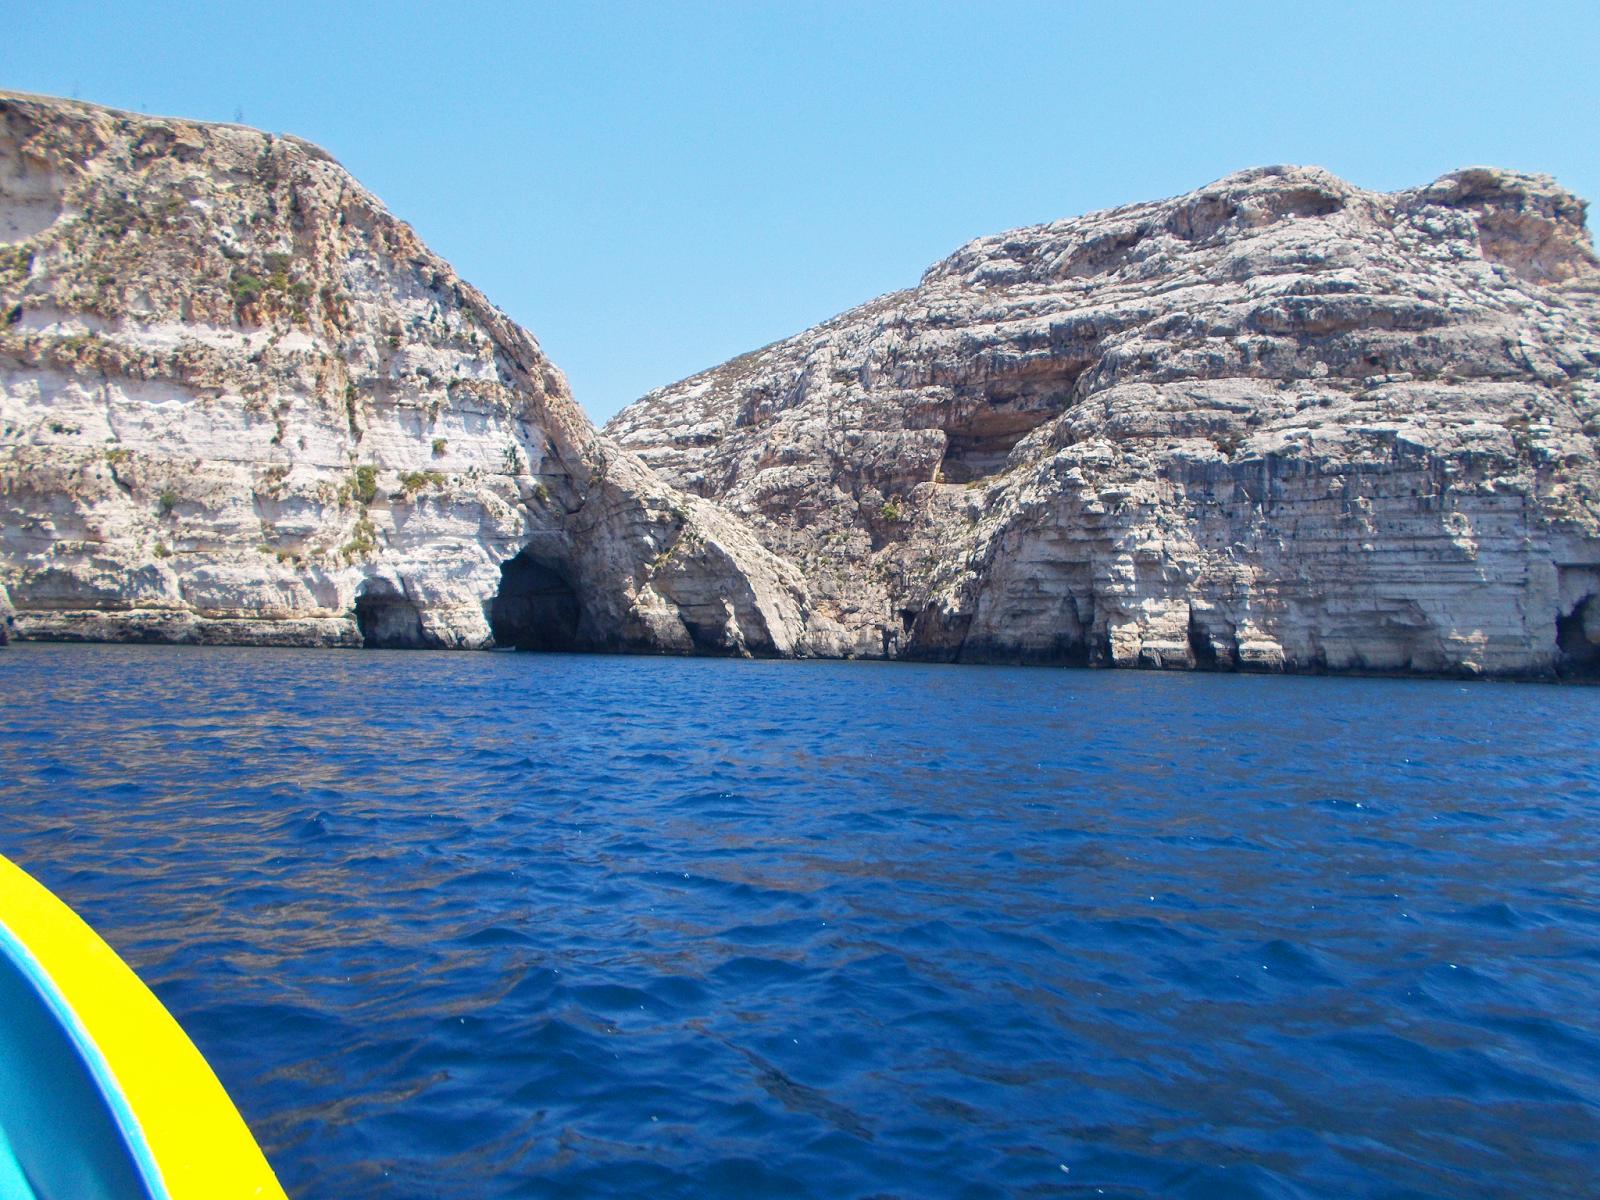 The view of the Blue Lagoon whilst on a boat ride in Malta